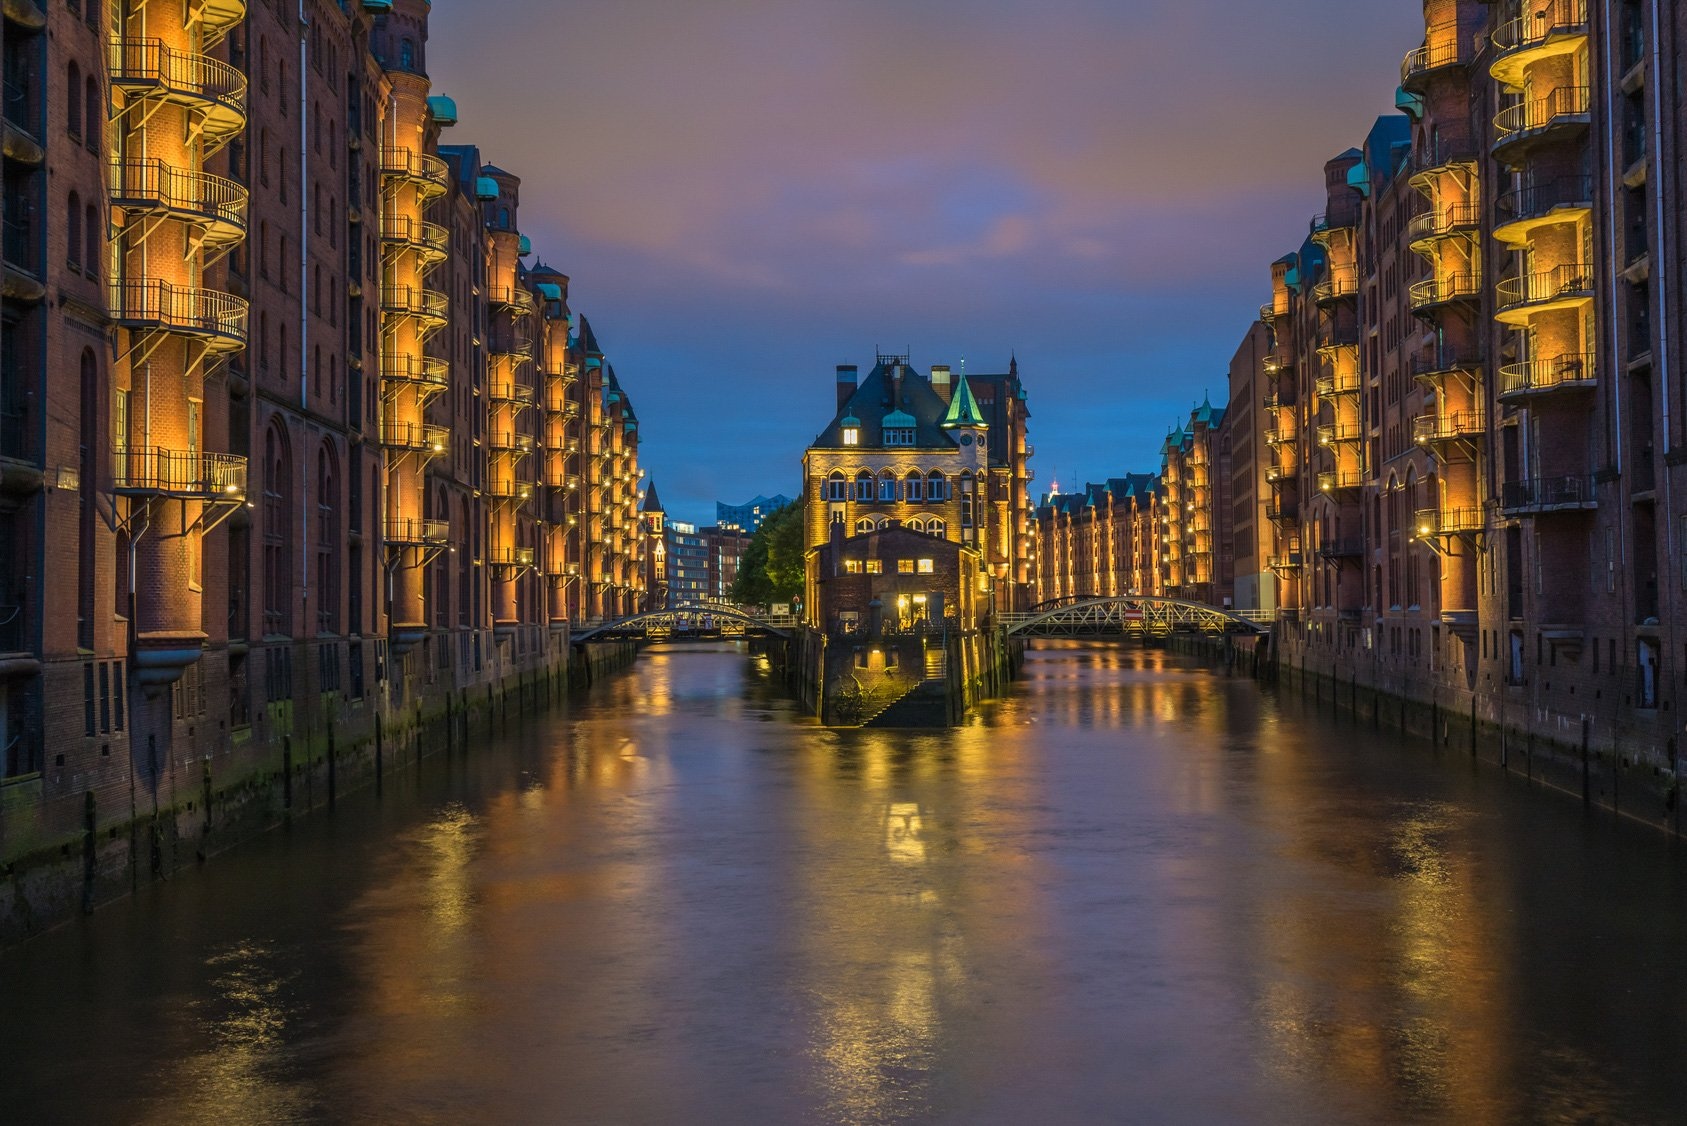 Water castle in old Speicherstadt or Warehouse district, Hamburg